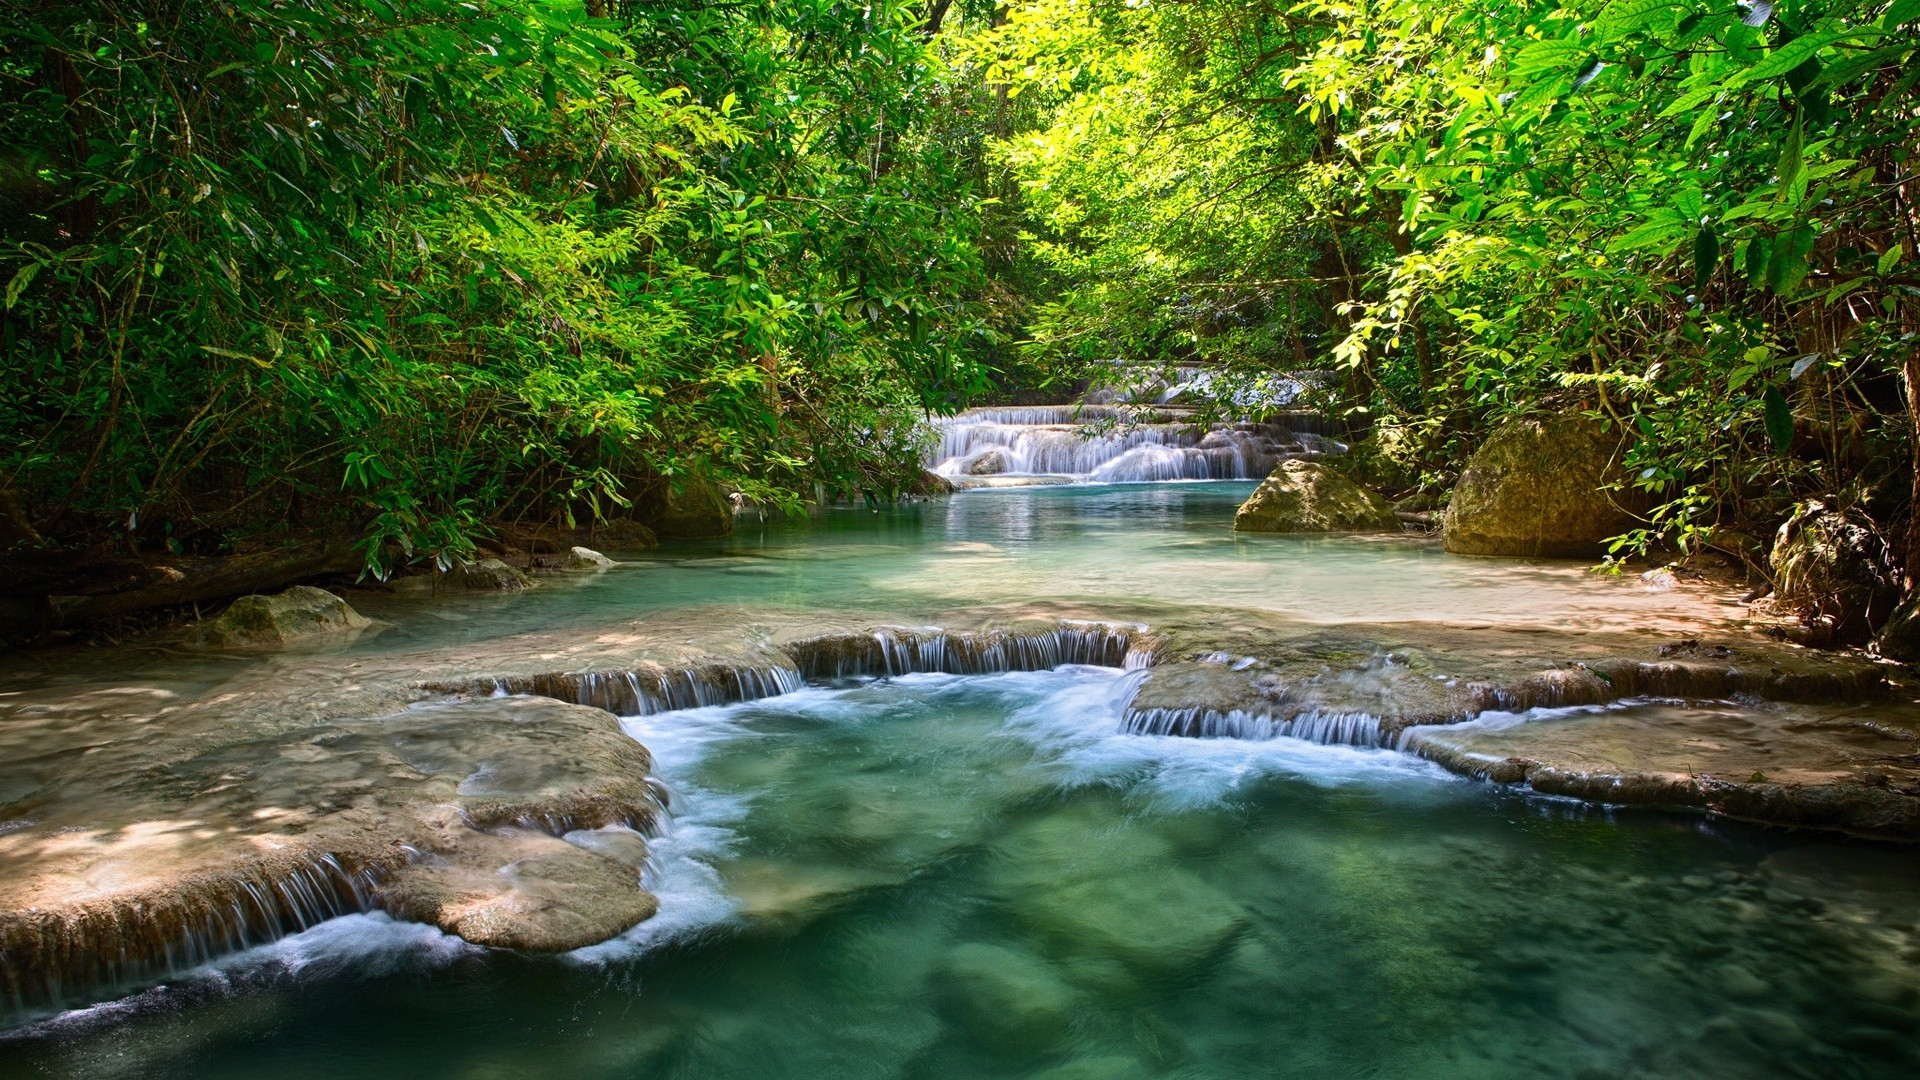 river with small rapids hd desktop wallpaper download this wallpaper 643